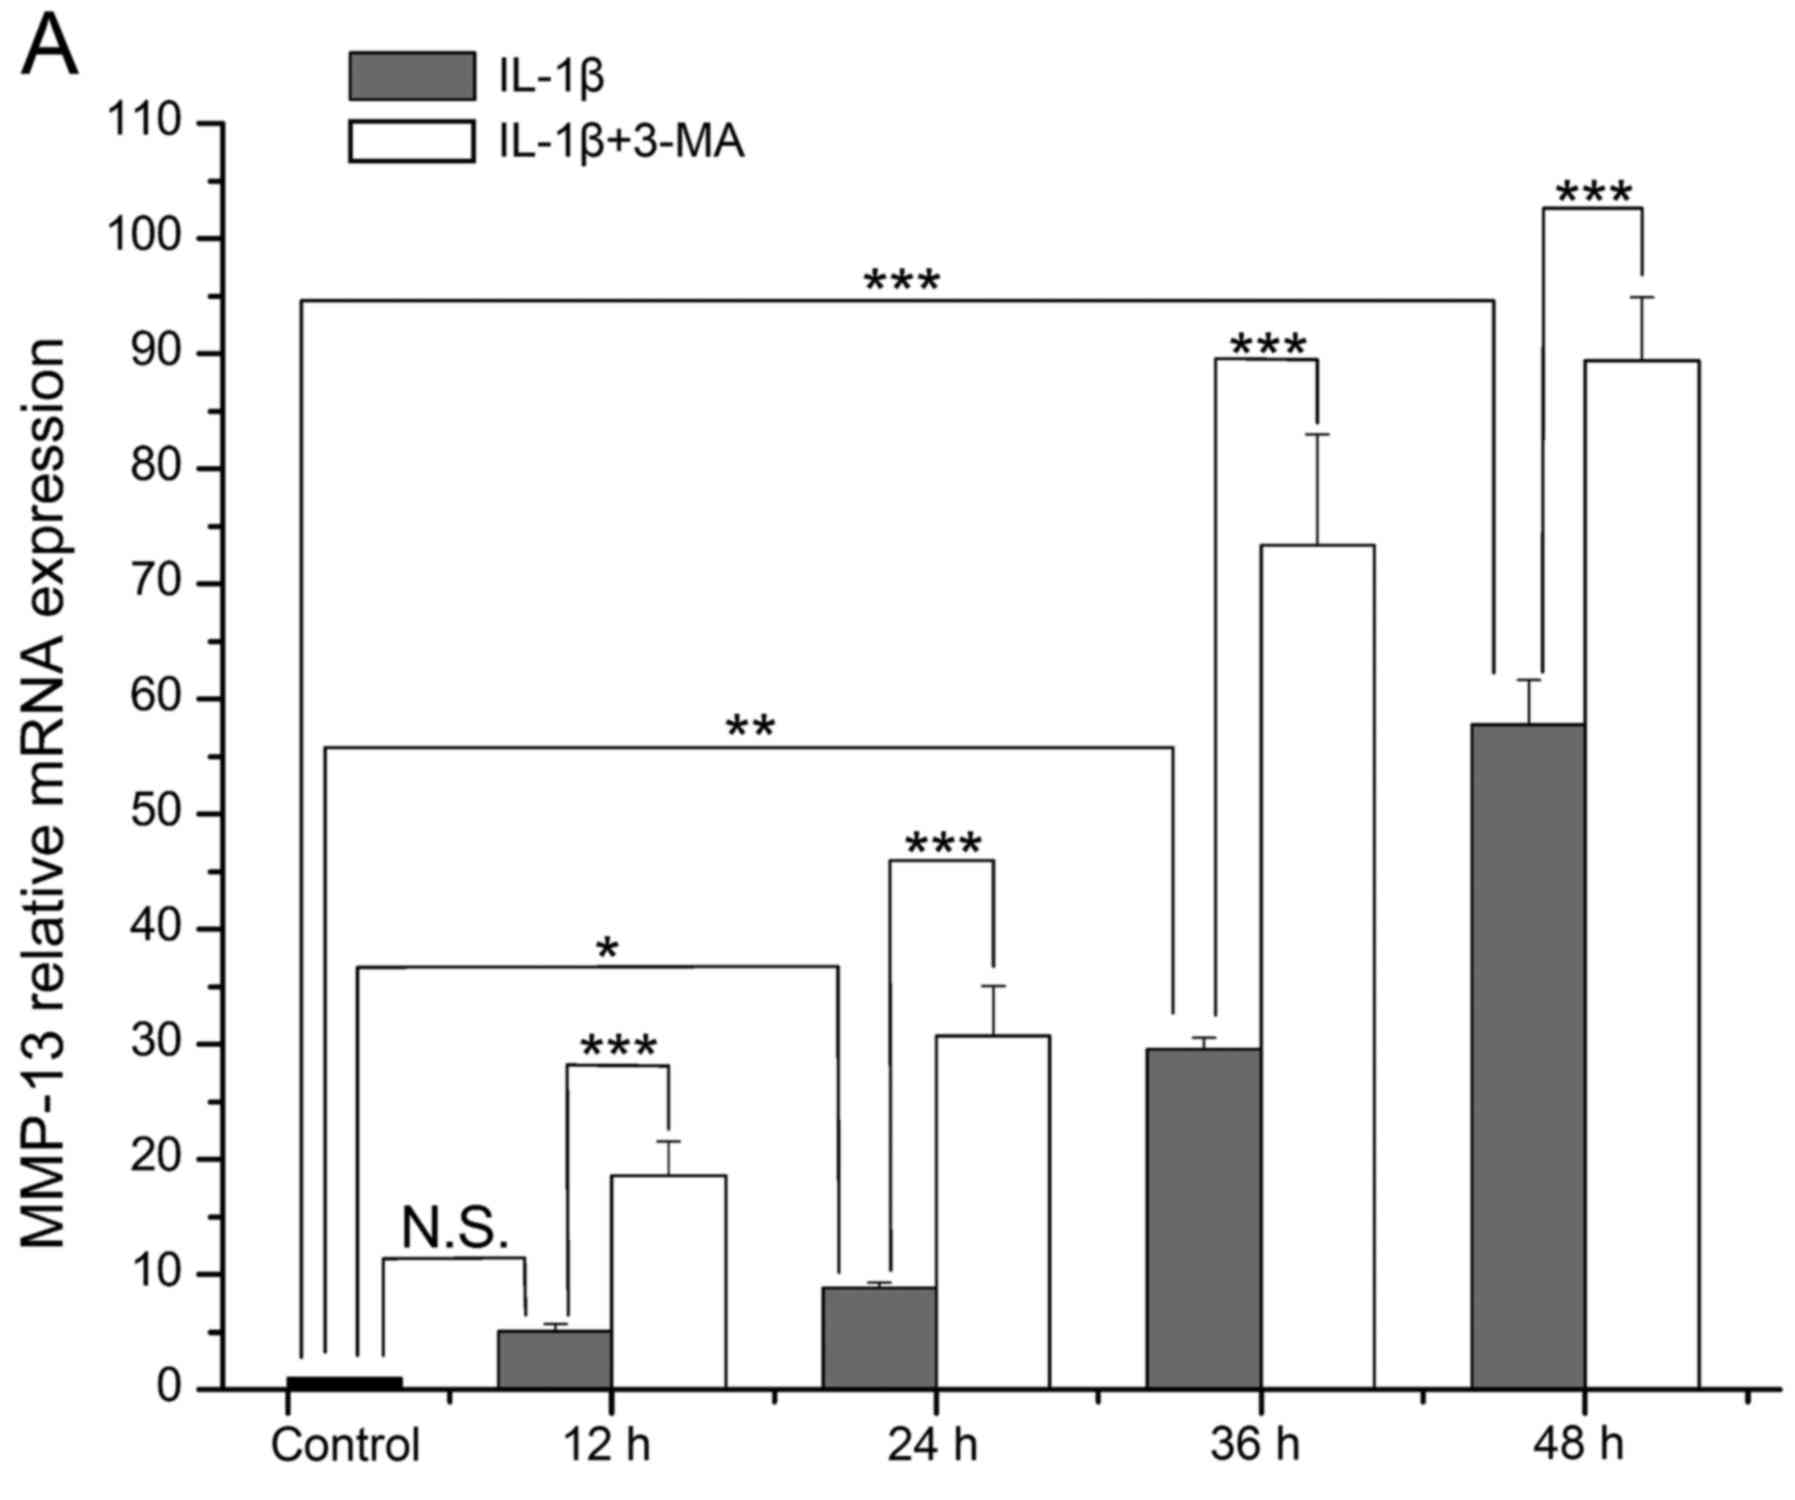 Figure 2 A parison of the mRNA expression level of matrix metalloproteinase MMP 13 in interleukin IL 1β stimulated SW1353 cells between the